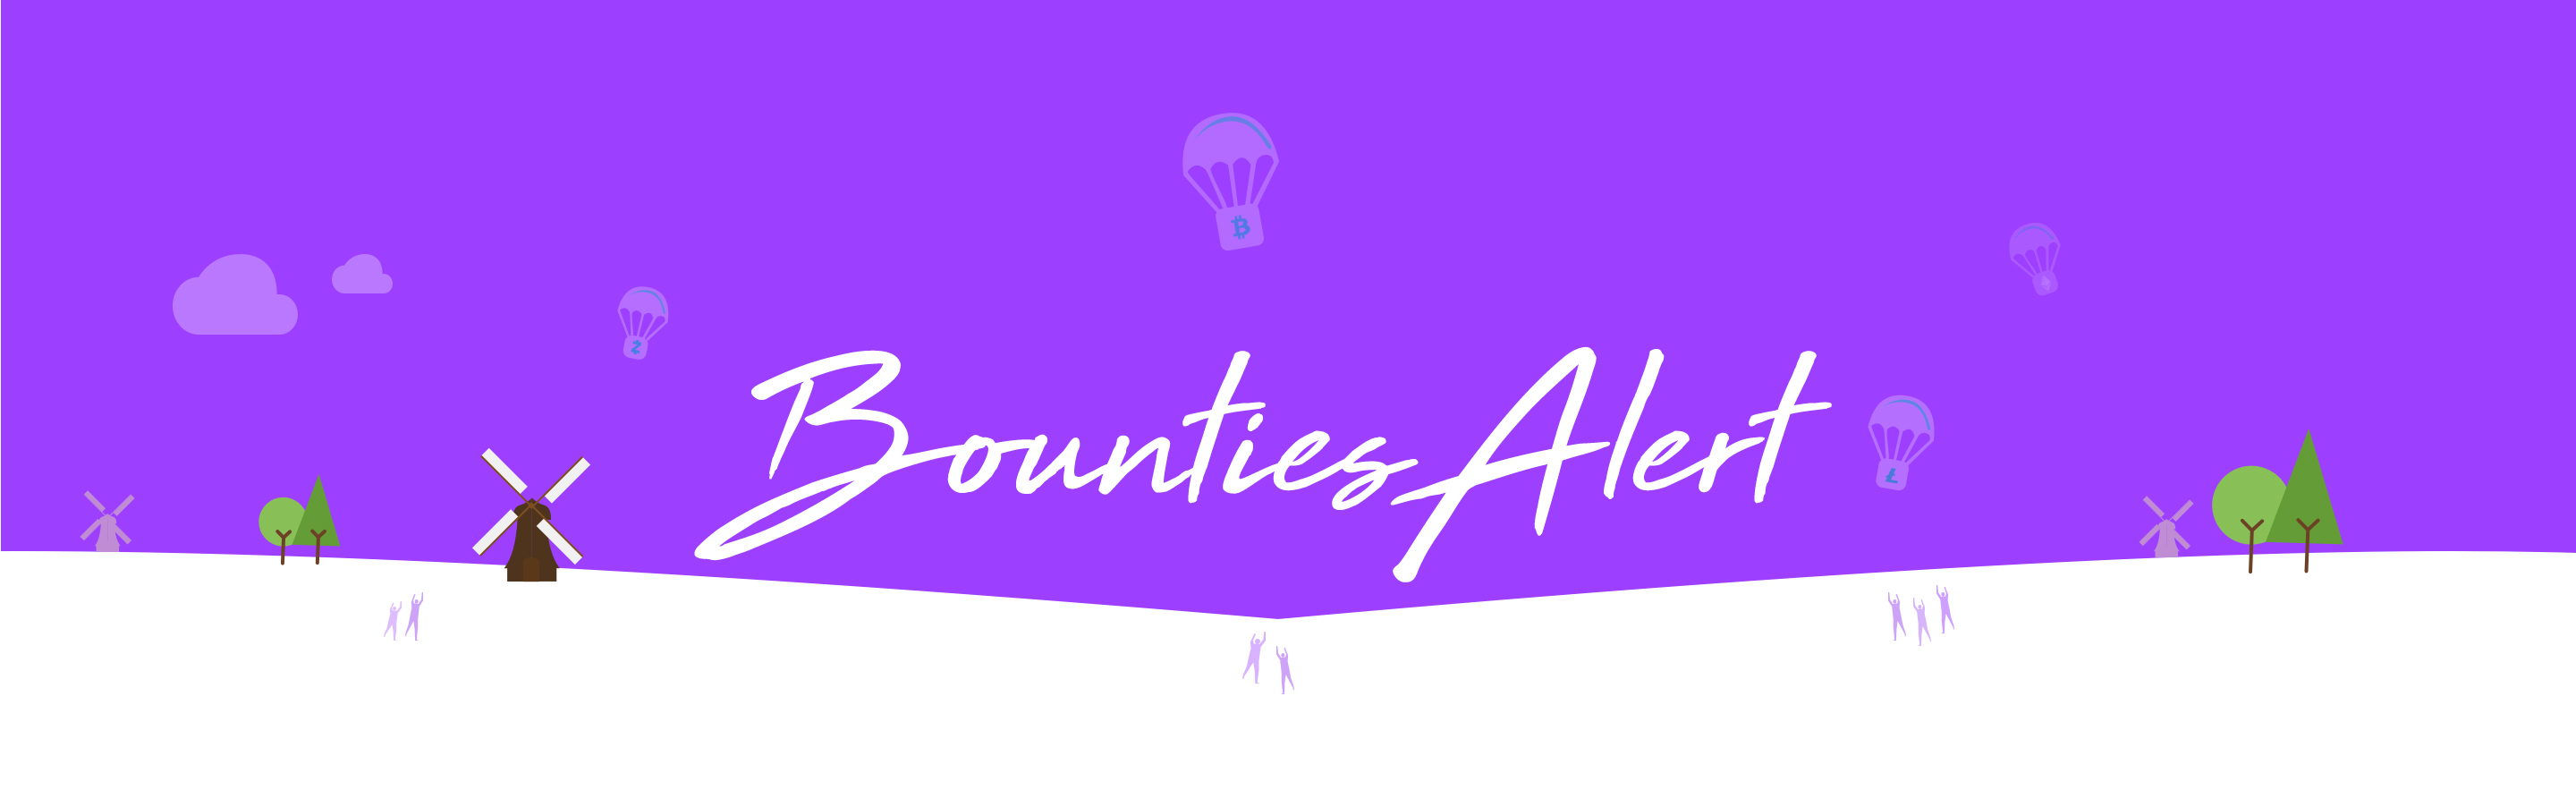 The new face of Bounties Alert!